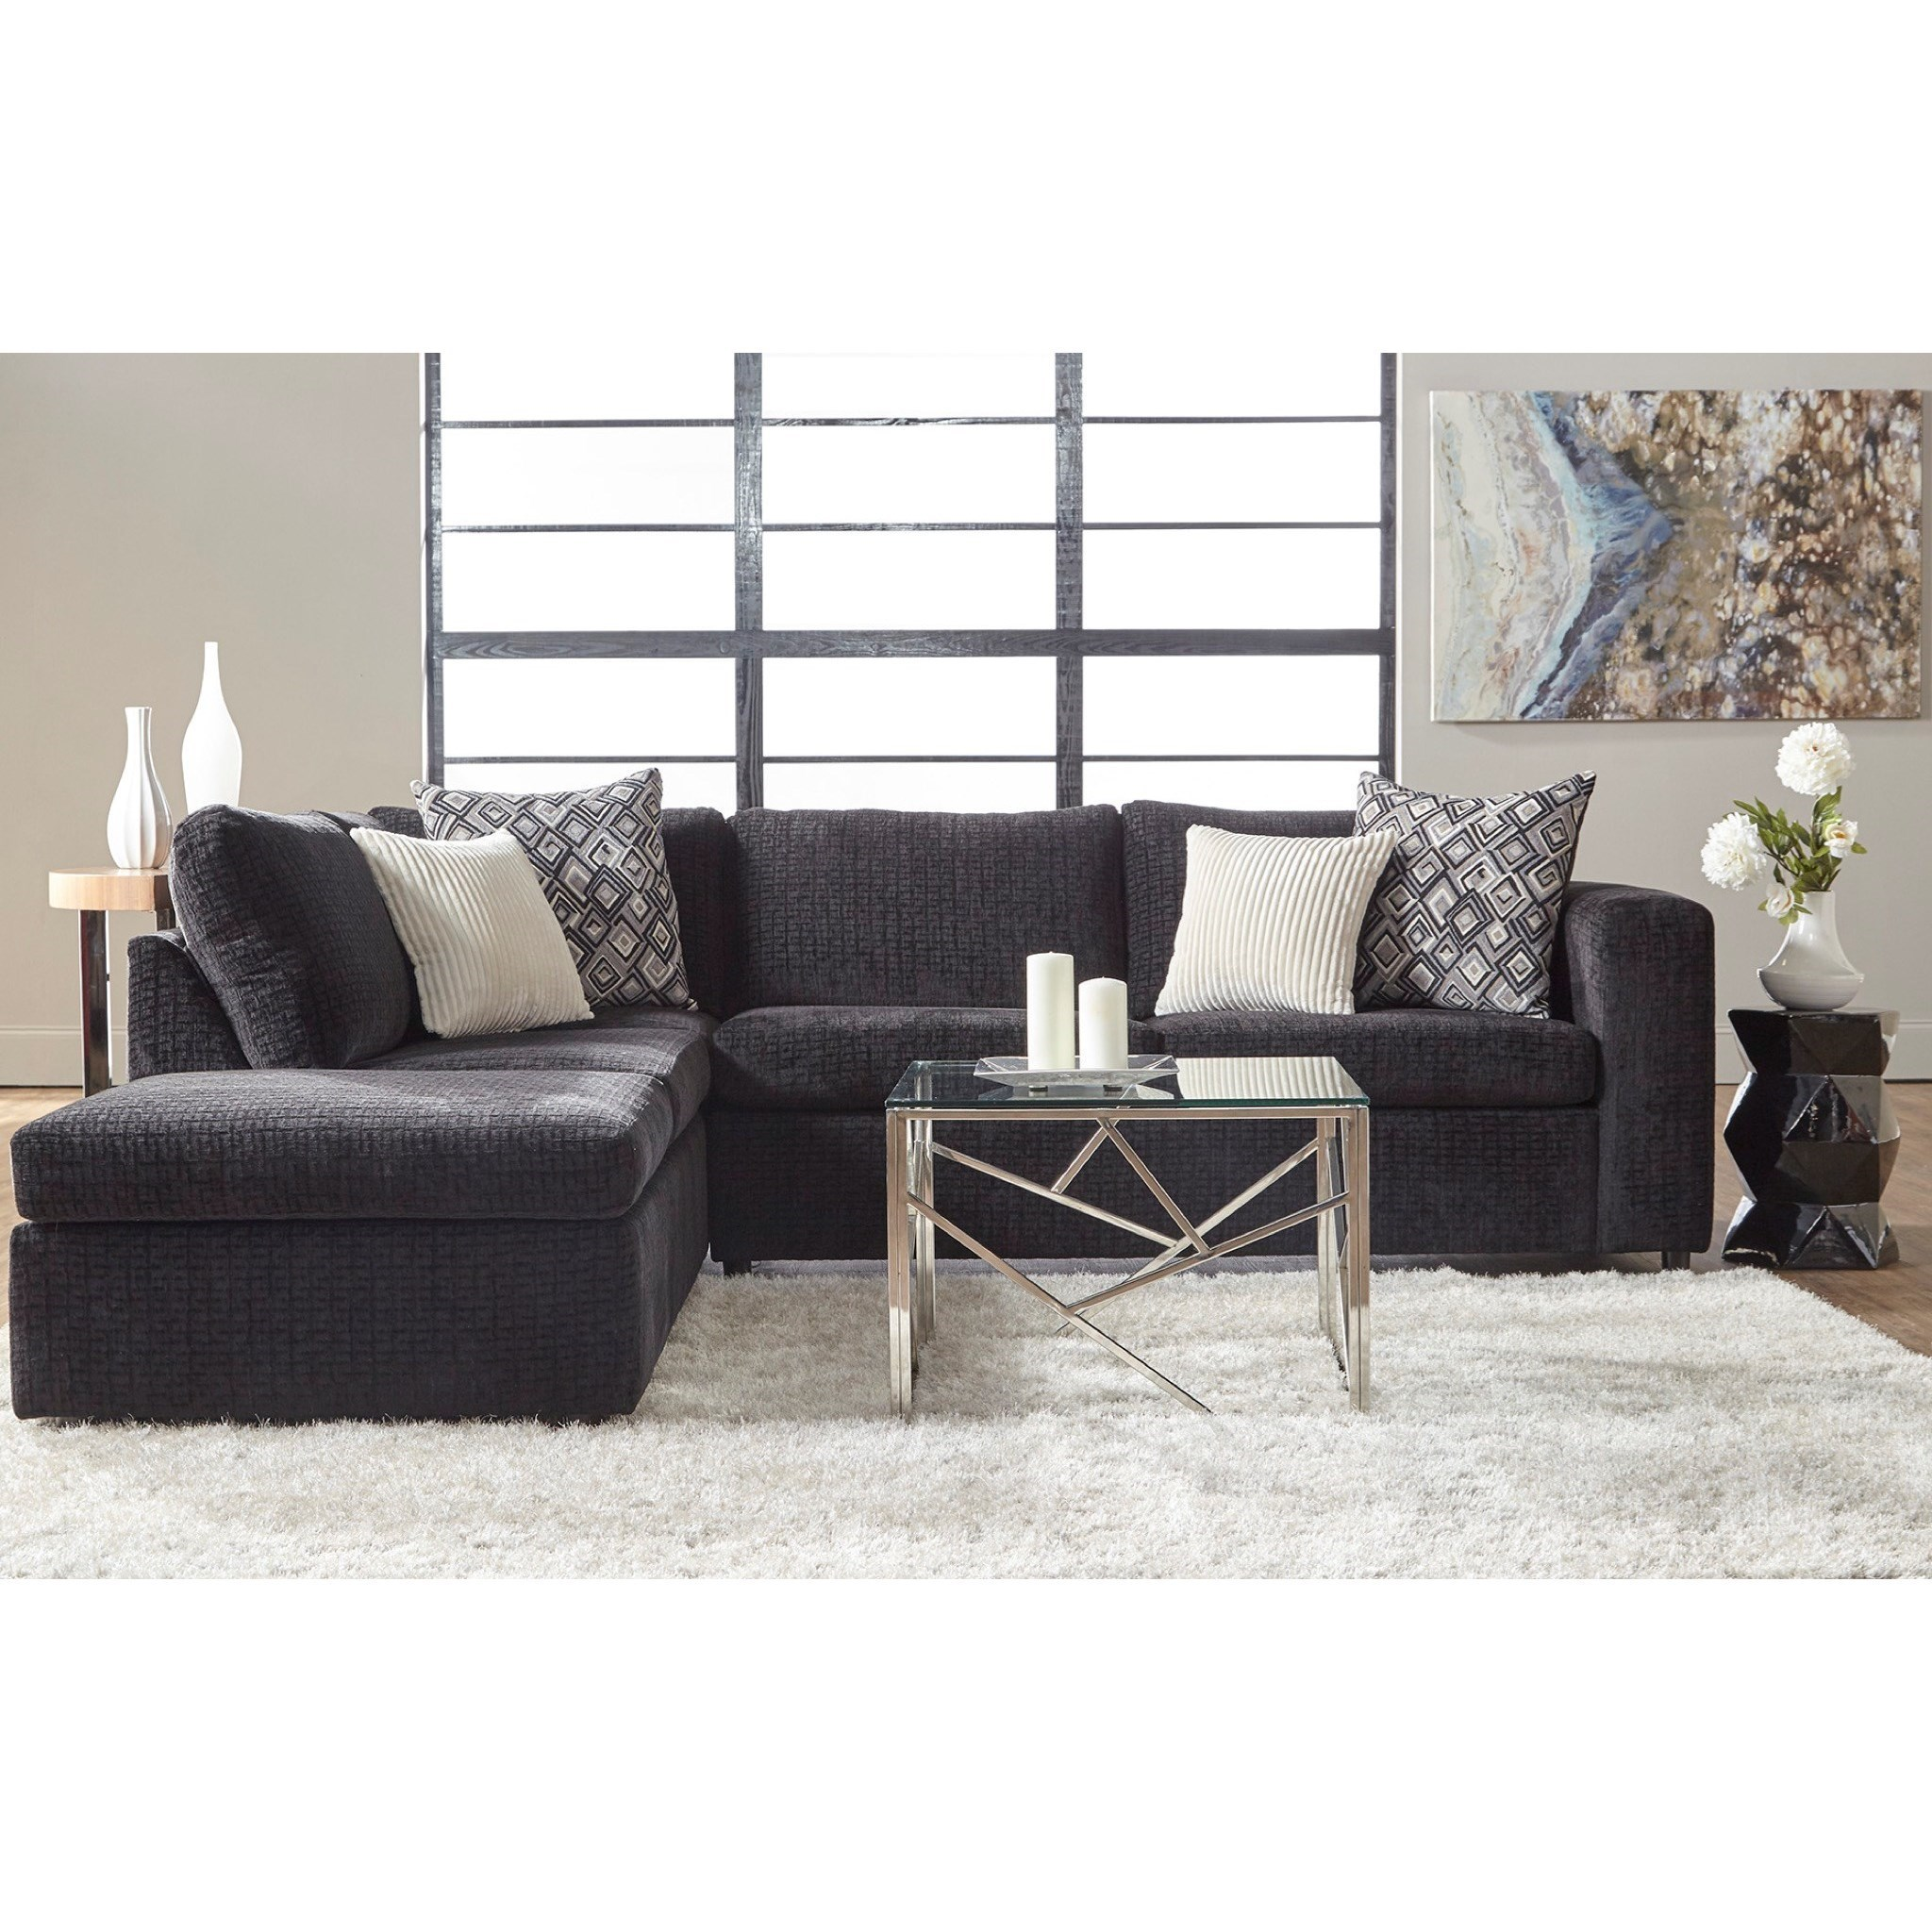 Etonnant Serta Upholstery By Hughes Furniture 1100Sectional Sofa With Chaise